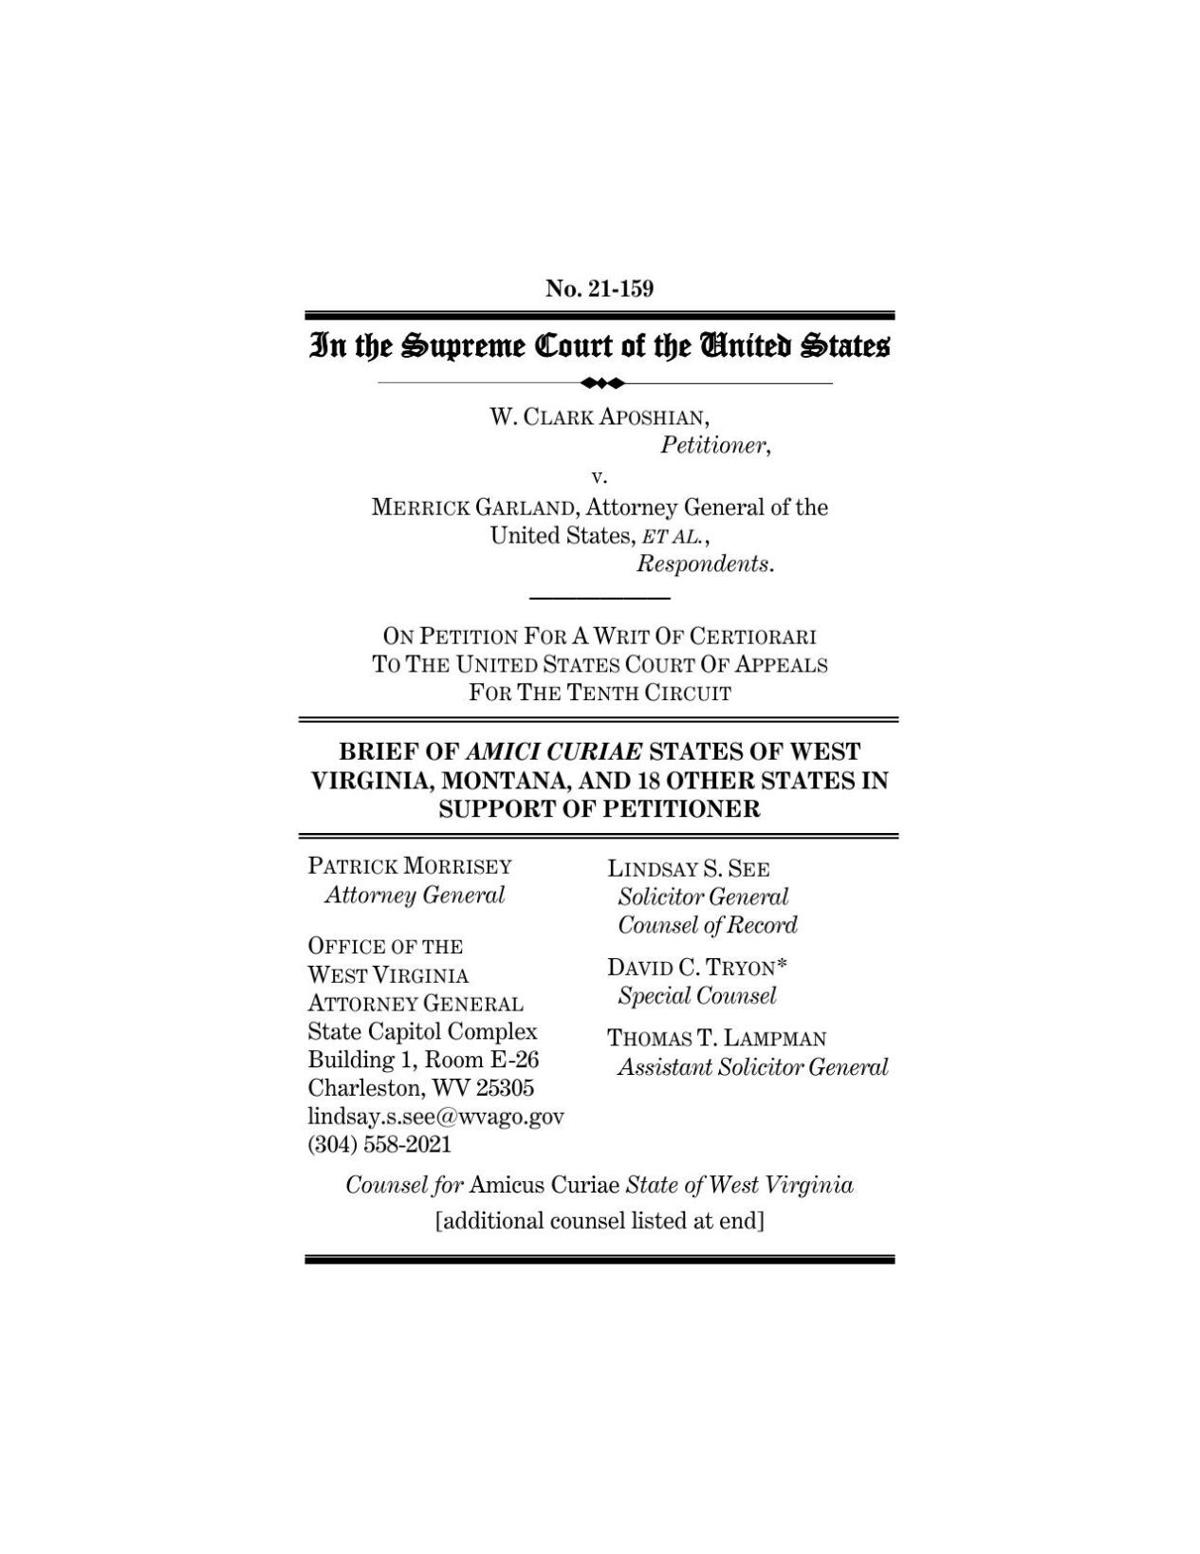 Indiana-supported amicus brief urging U.S. Supreme Court review of federal bump stock ban